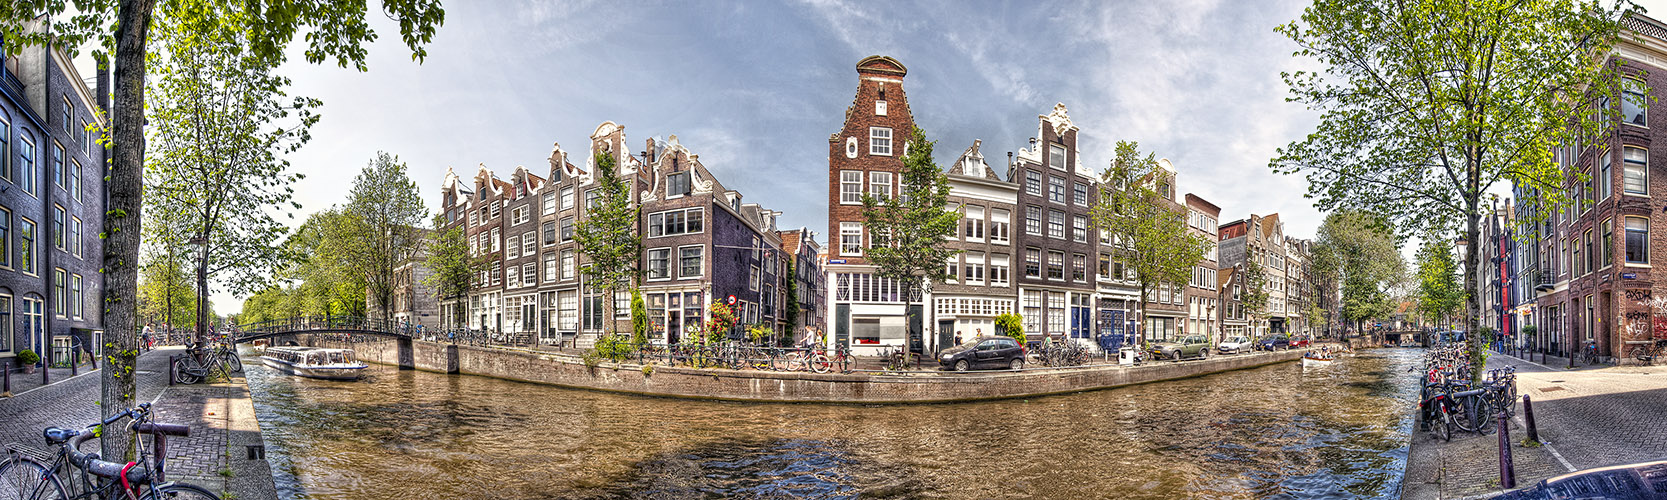 Amsterdam Panorama FX - Zy-co Design & Photo